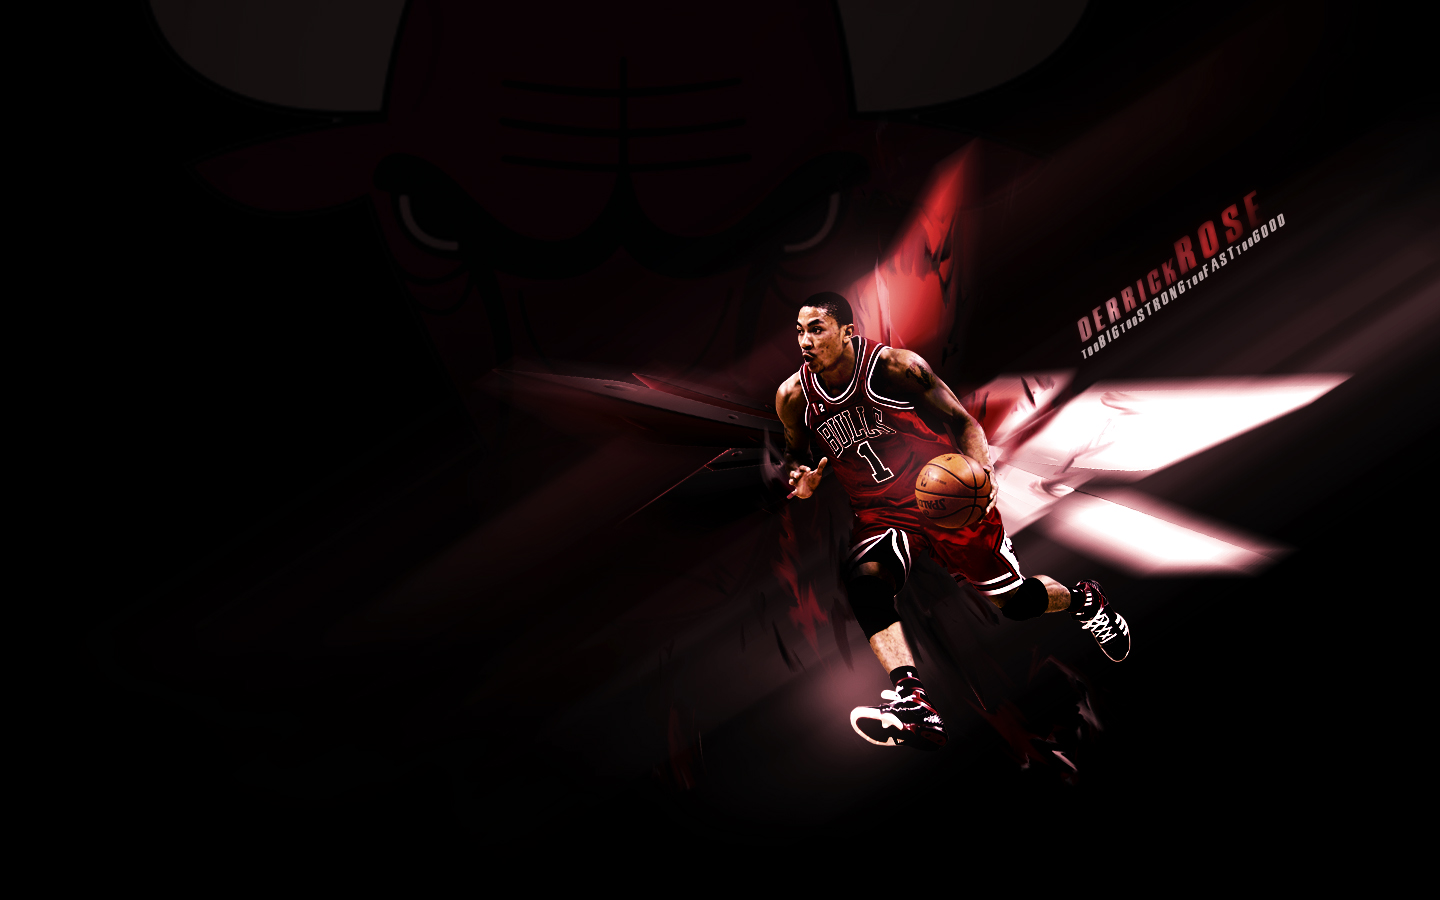 Derrick Rose Bulls Wallpaper By DoubleG33